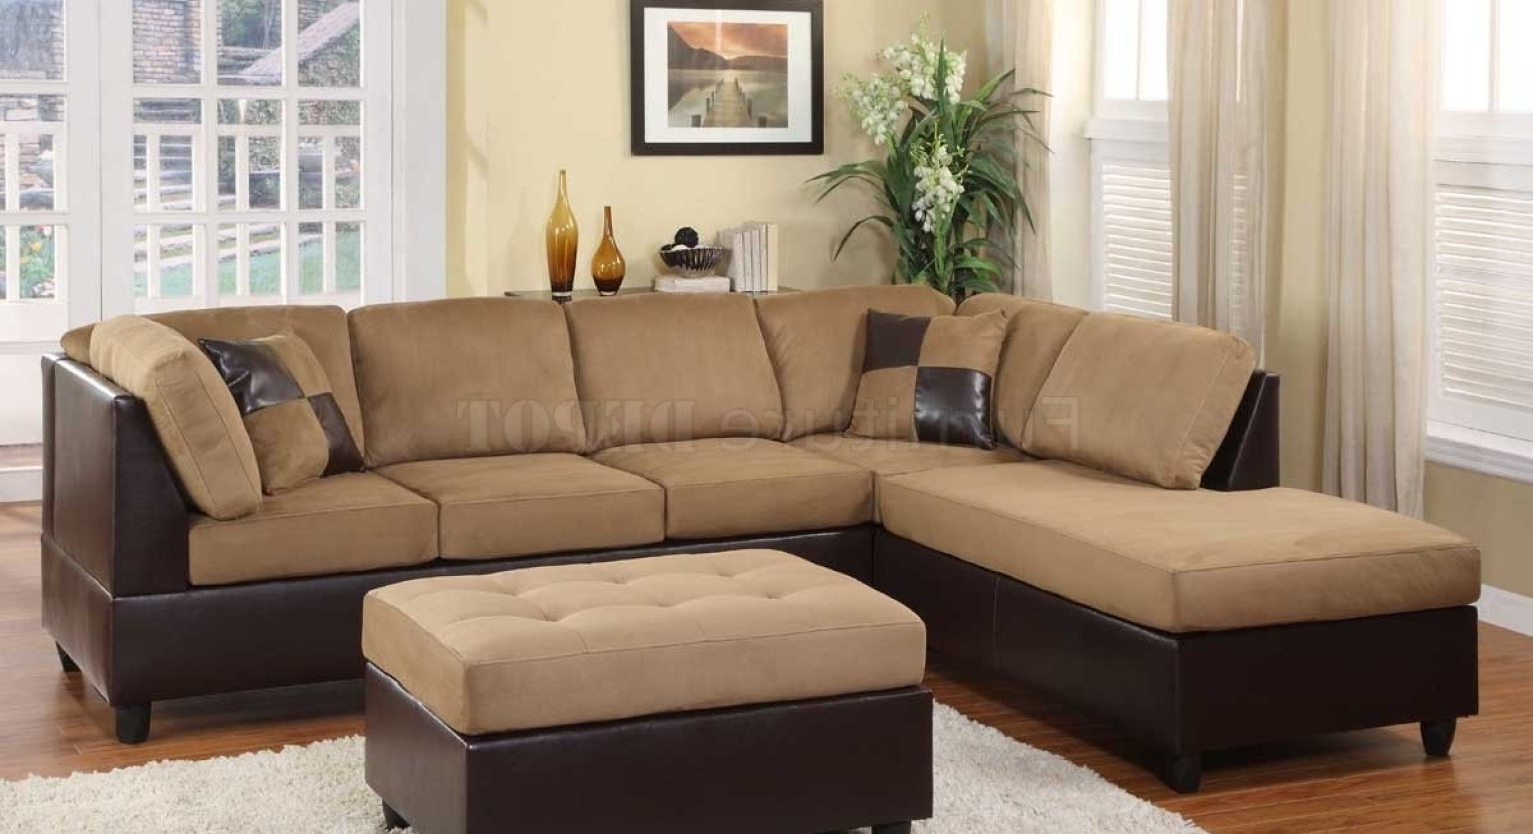 cheap sofas portland oregon circe sofa prezzo image gallery of sectional view 4 20 photos mediasupload with well known